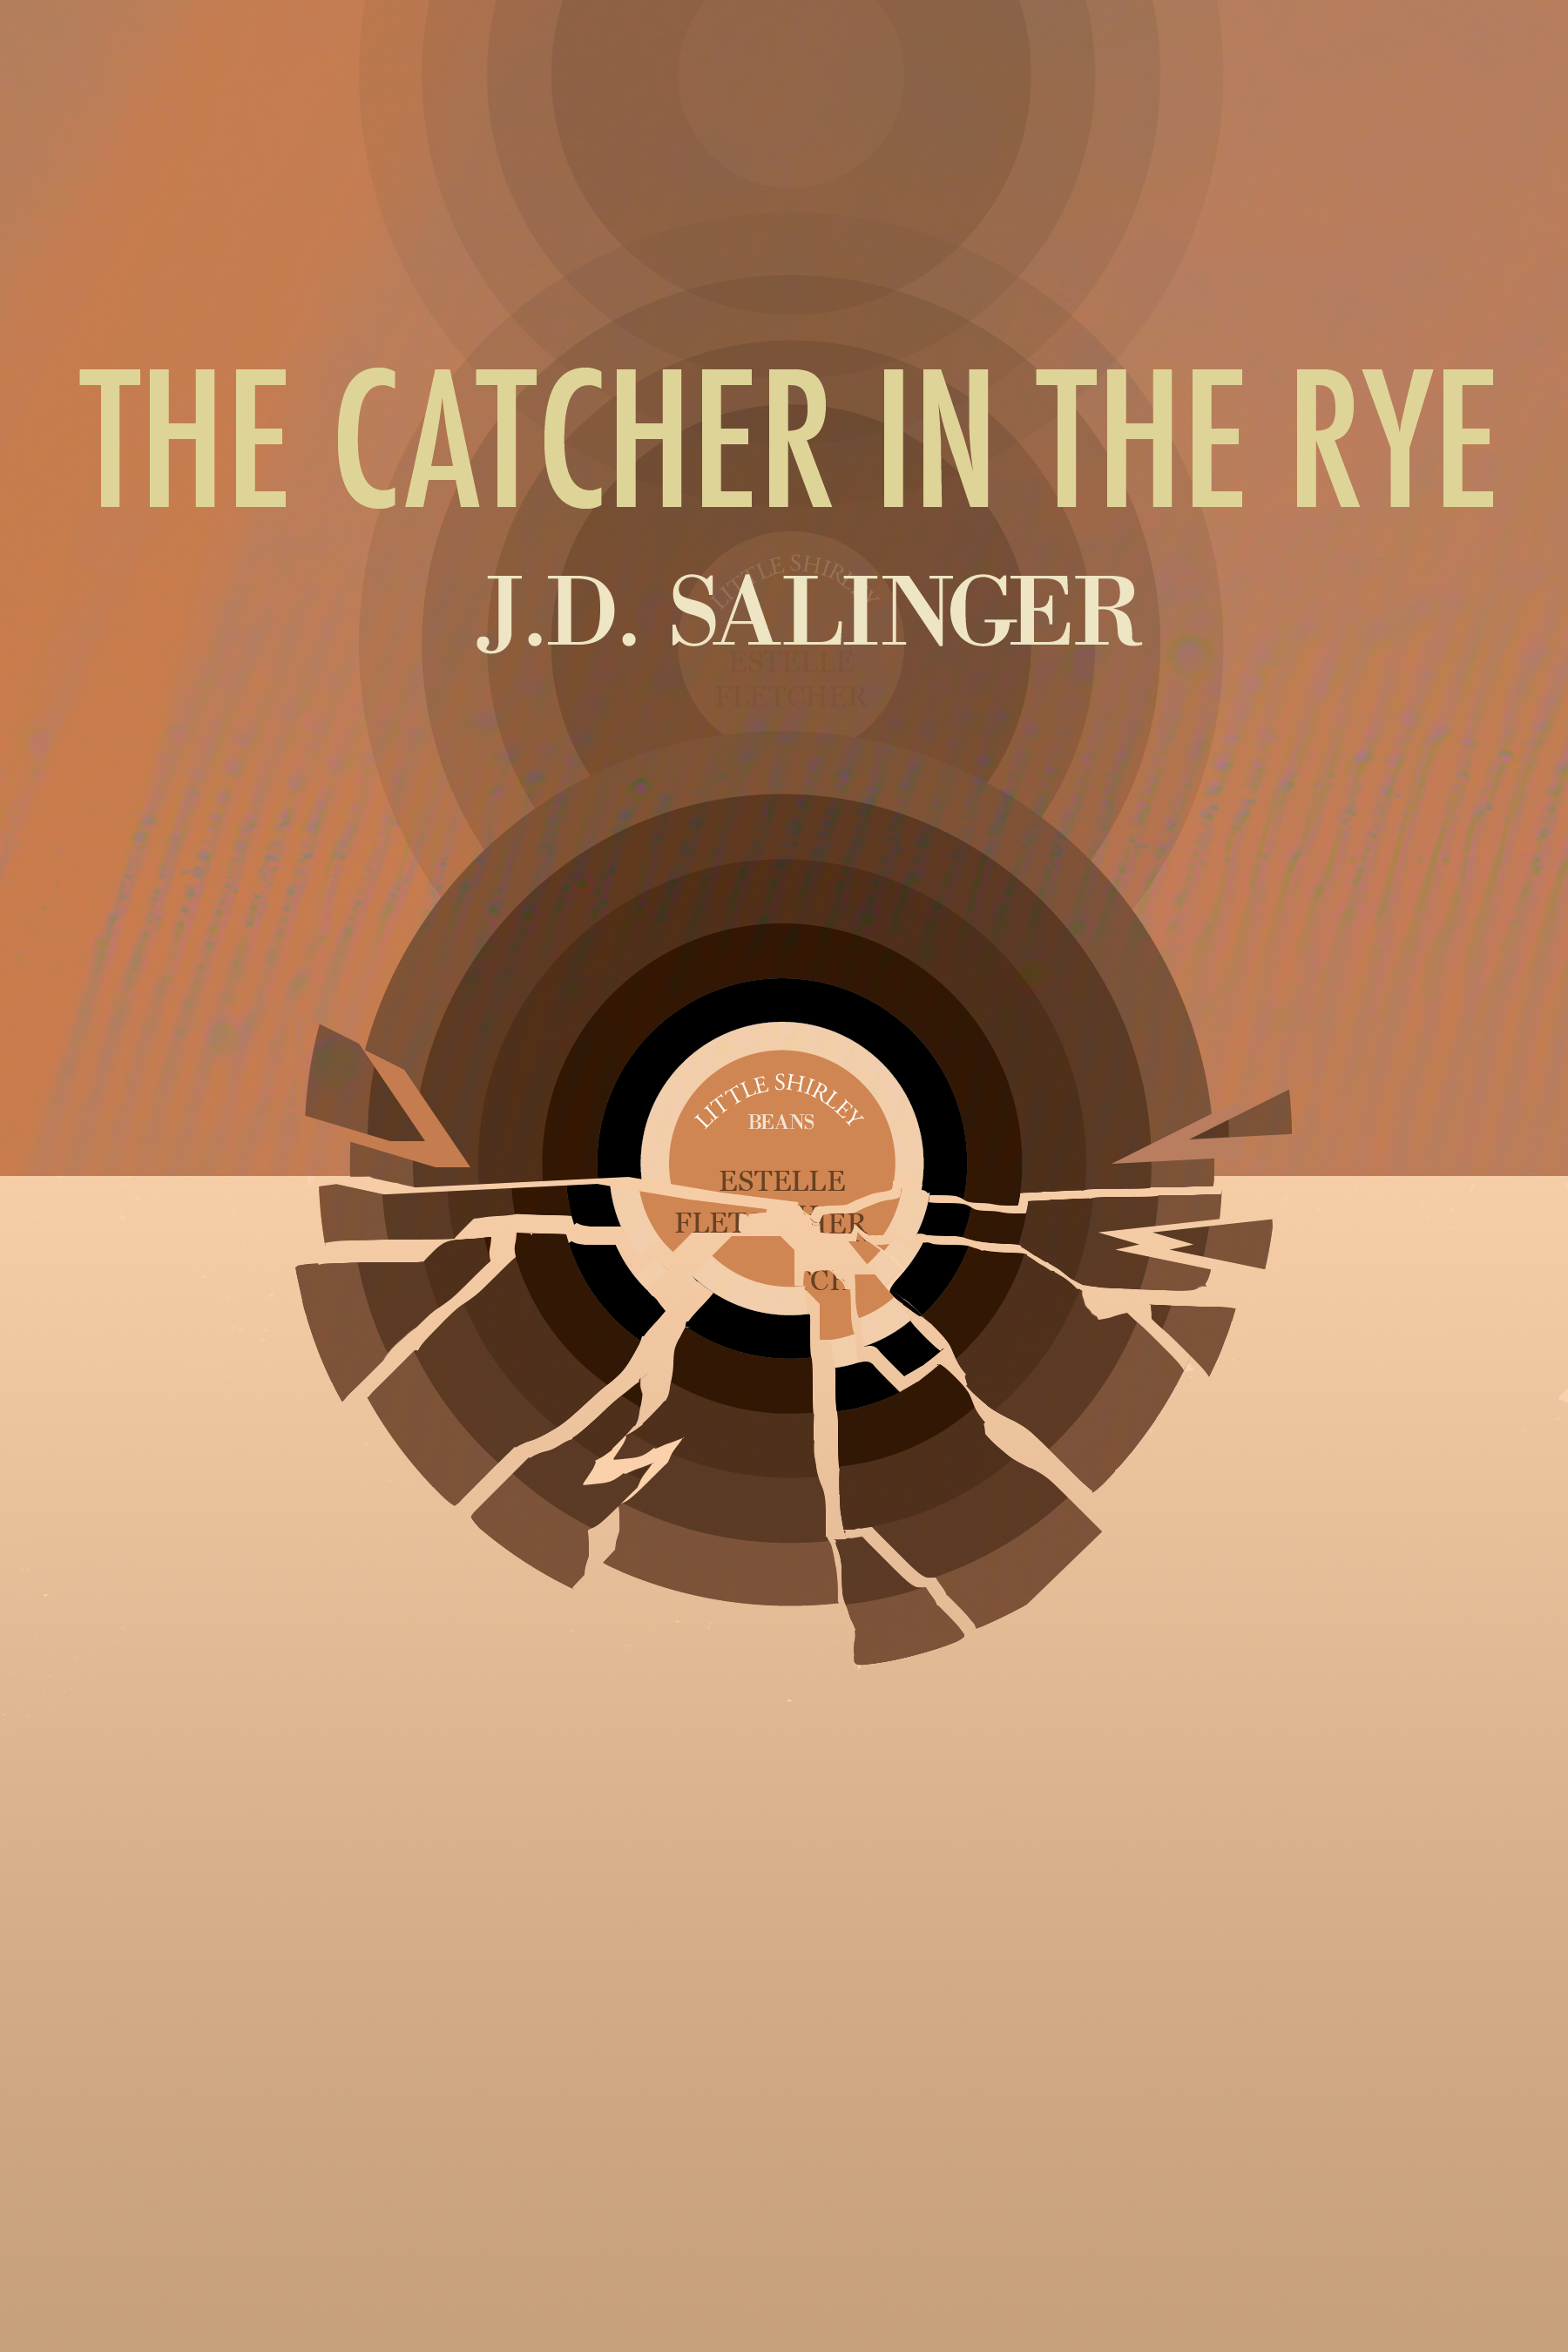 Catcher in the rye little shirley beans pdf